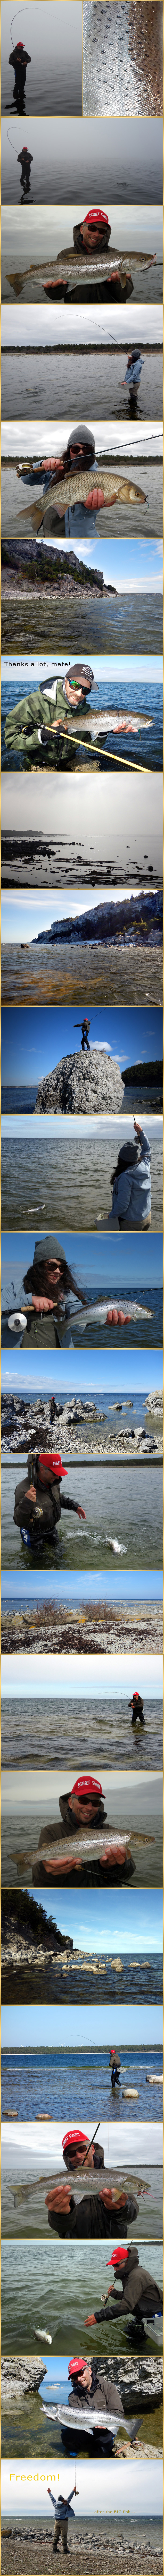 flyfishing on gotland